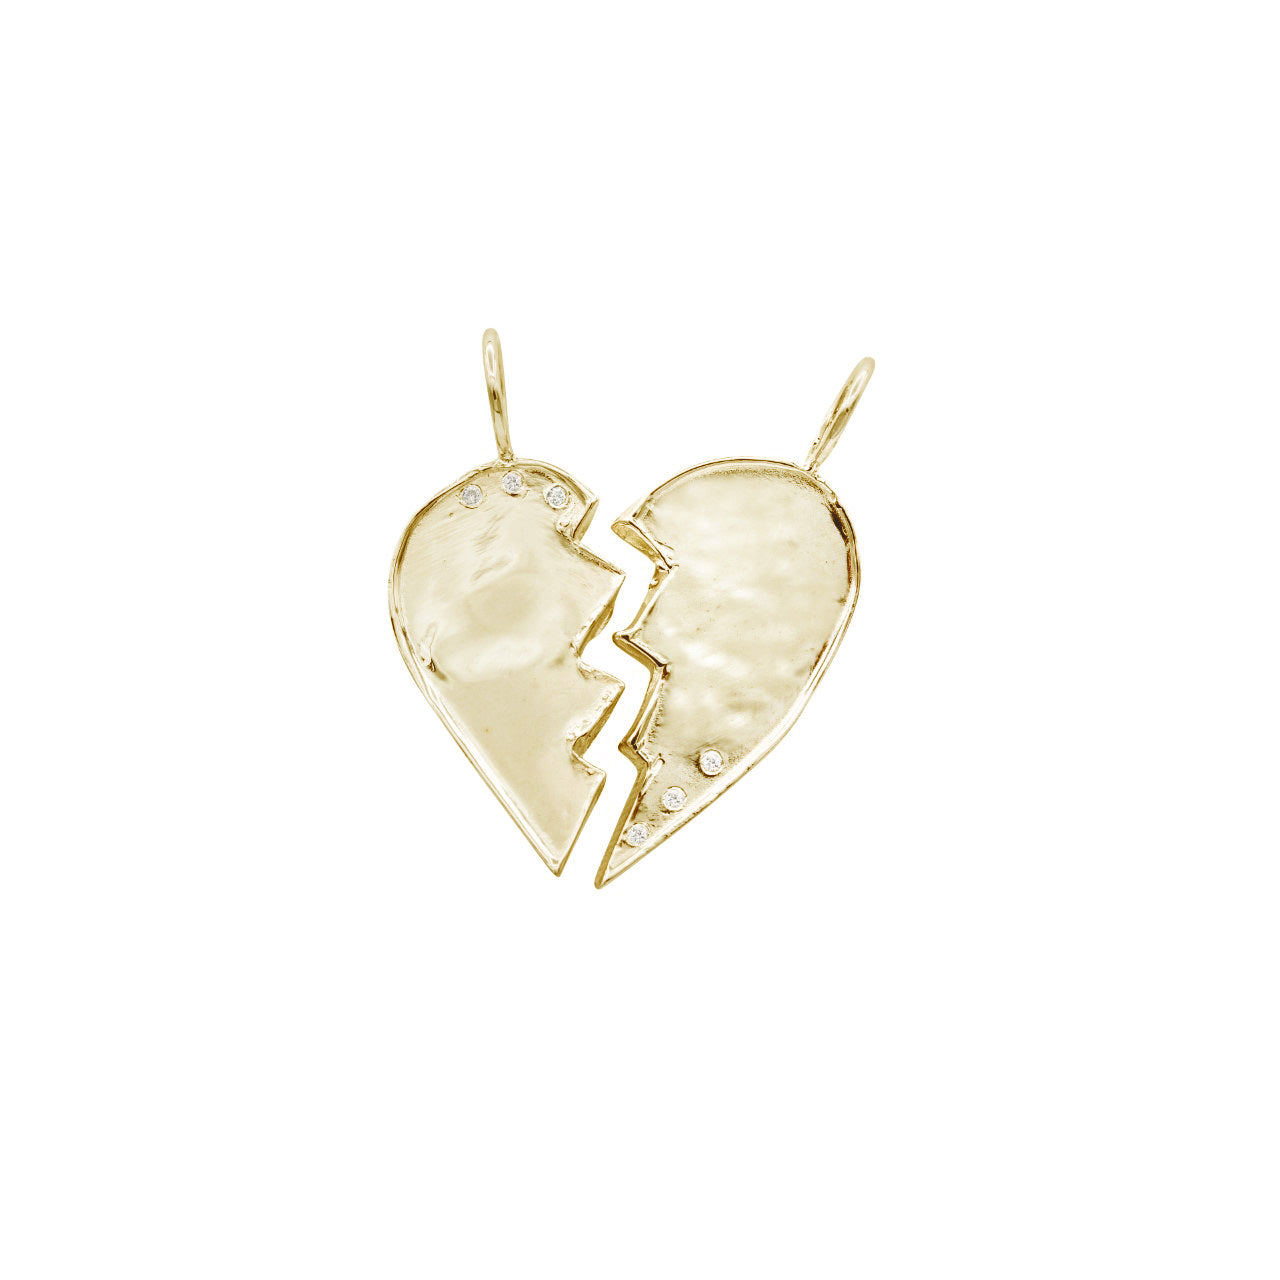 Gold w/ Diamonds Friendship Heart Charms